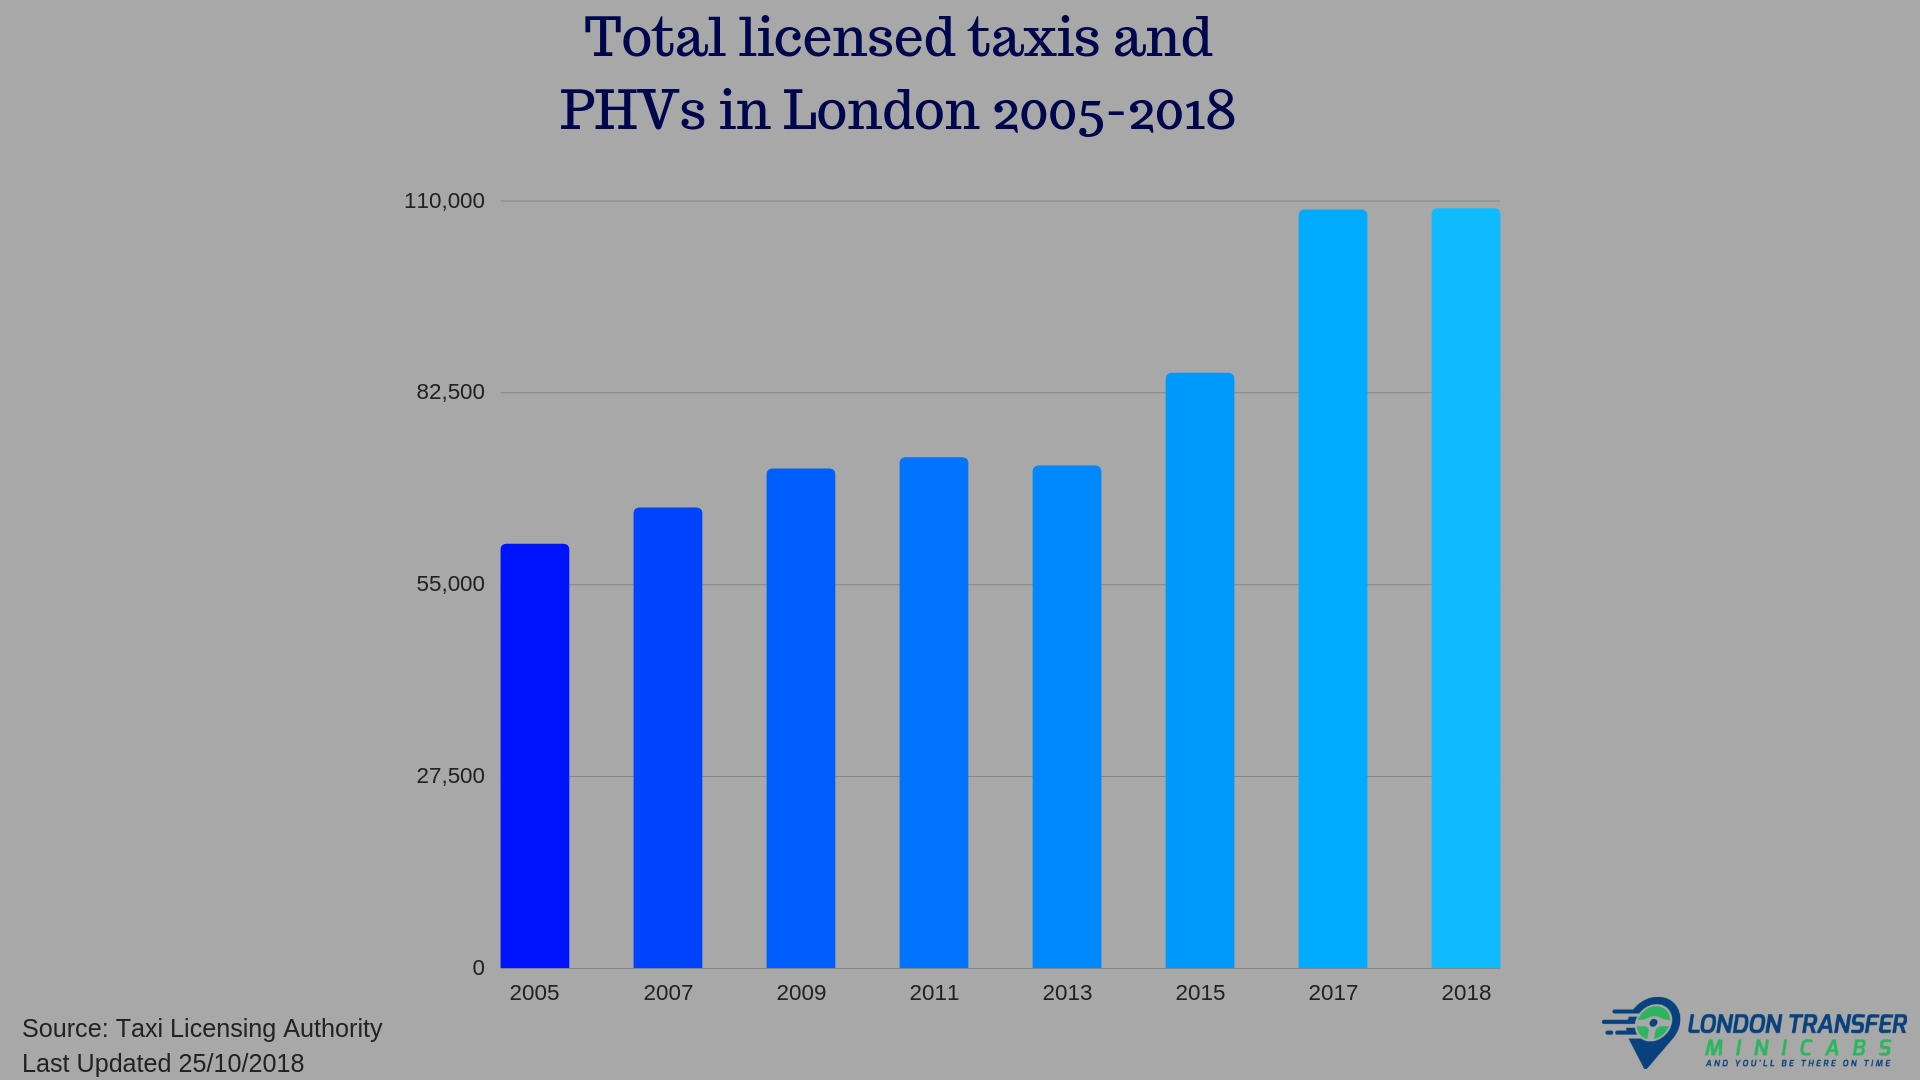 Total licensed taxis and PHVs in London 2005-2018